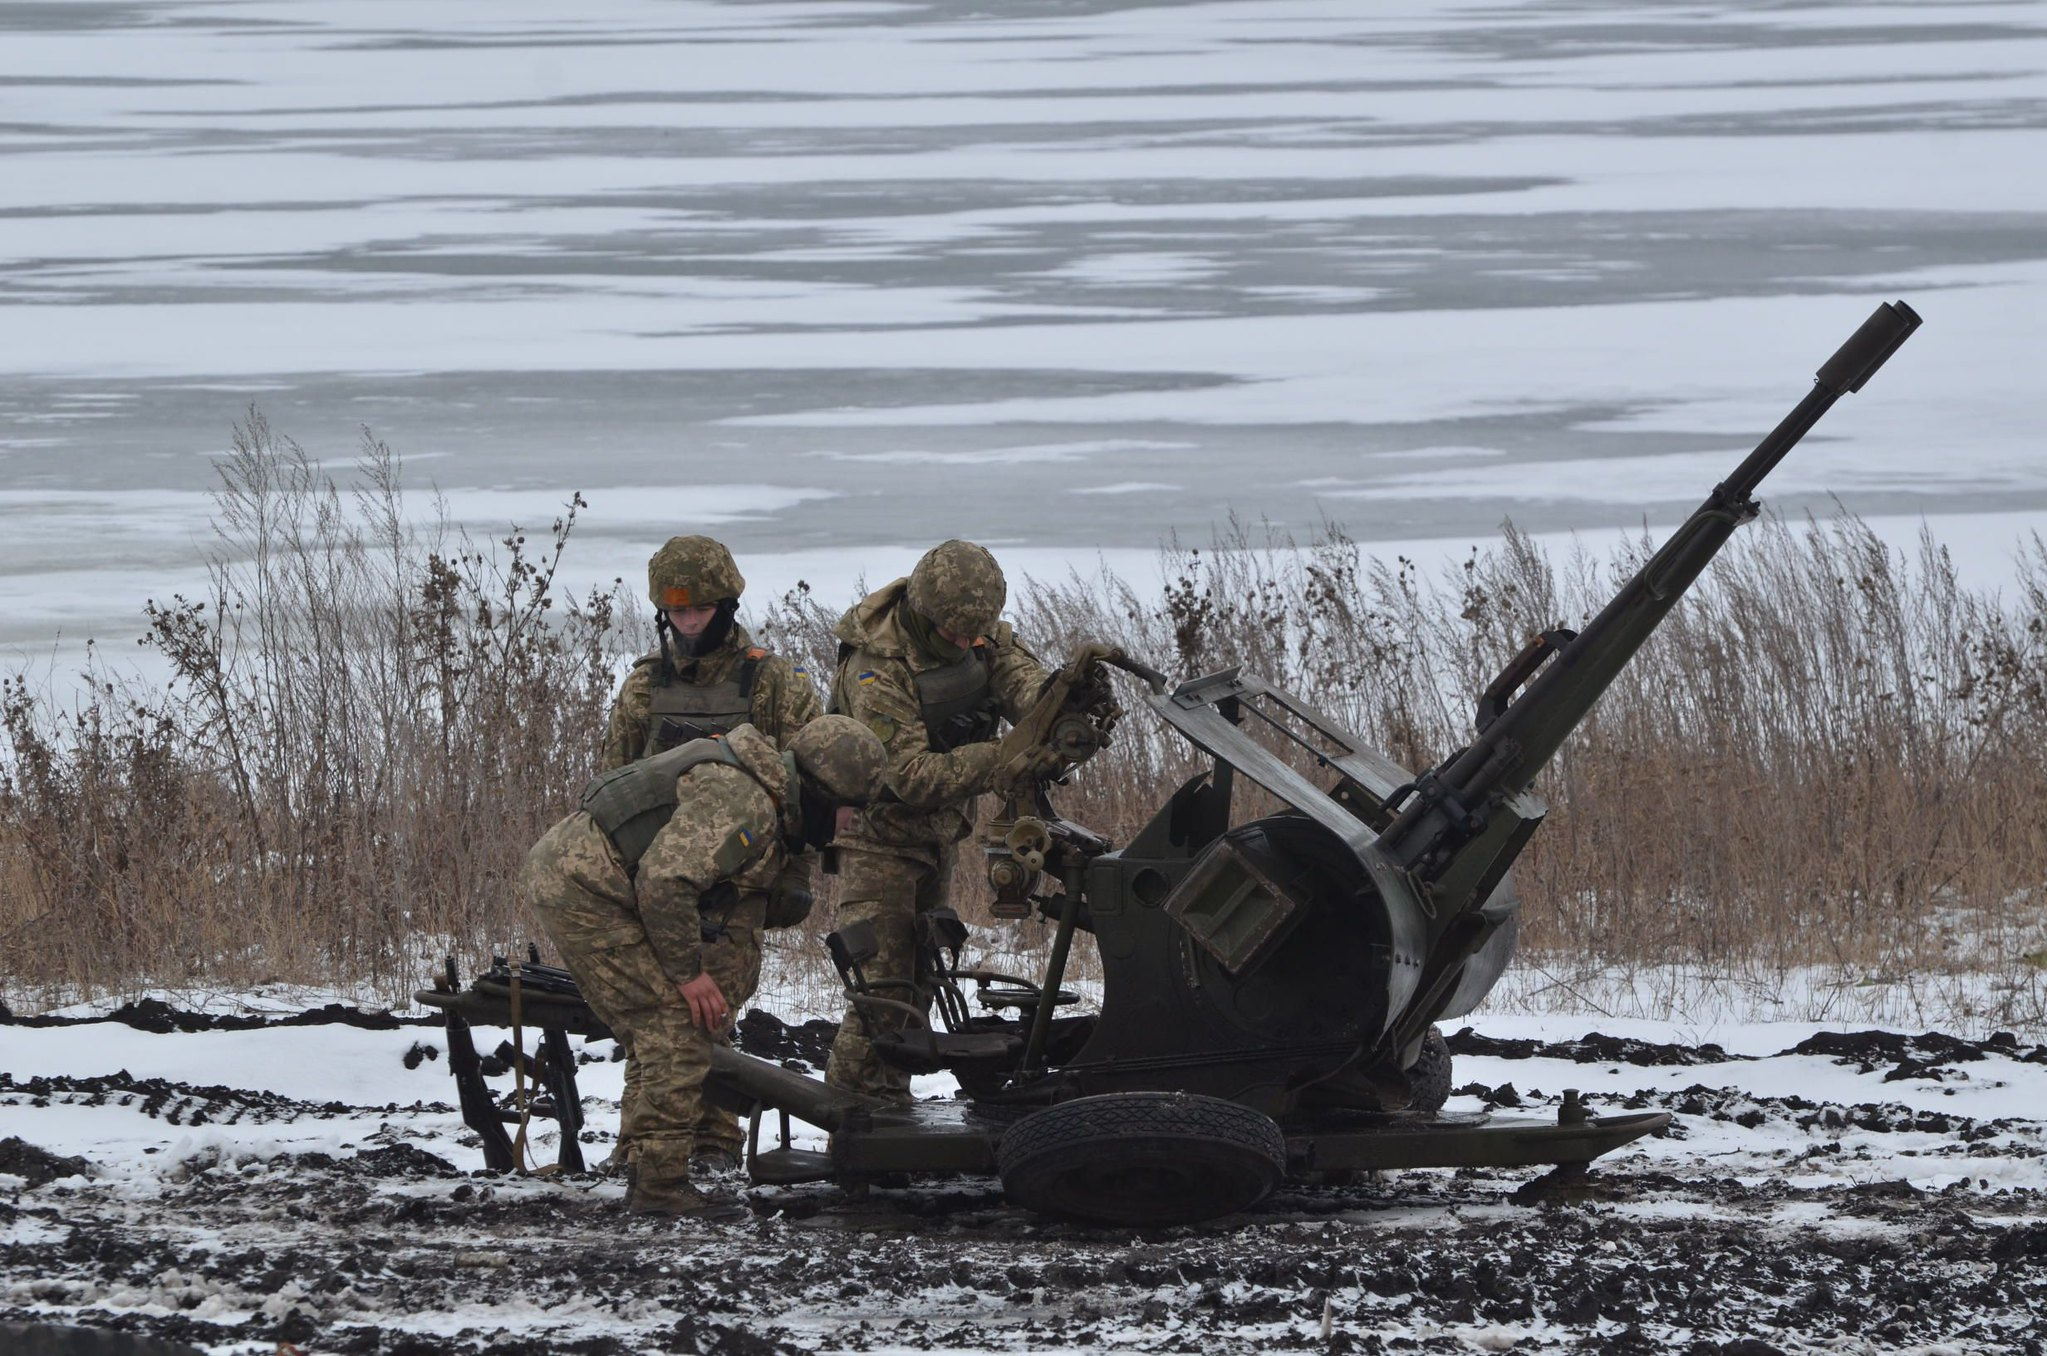 Kremlin Again Plays Donbas Card as Ukrainian Troops Die in Blast